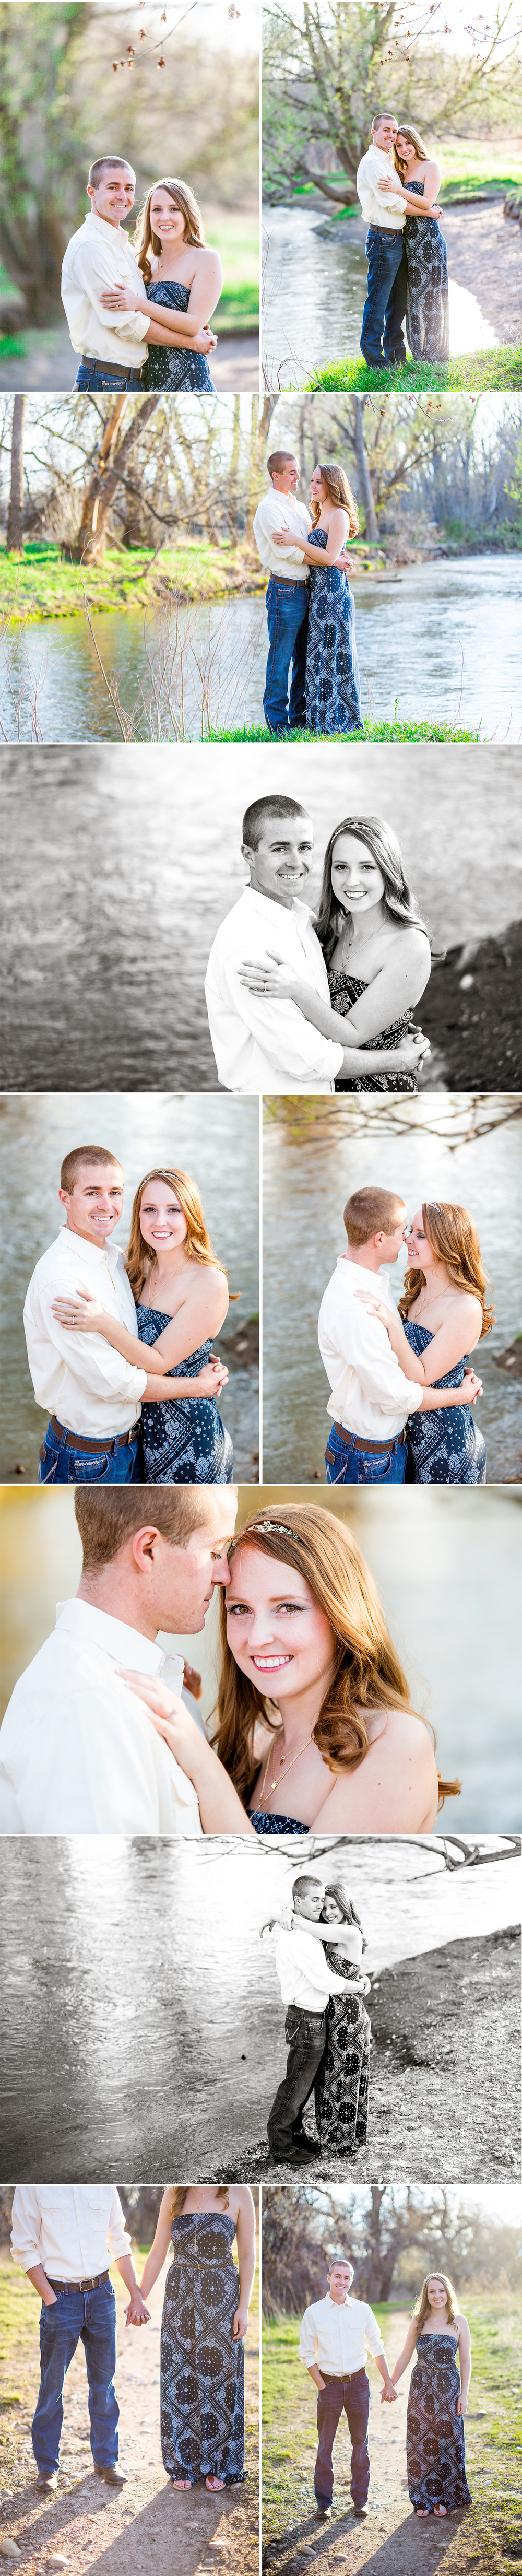 FortCollinsEngagementPhotography-3.jpg